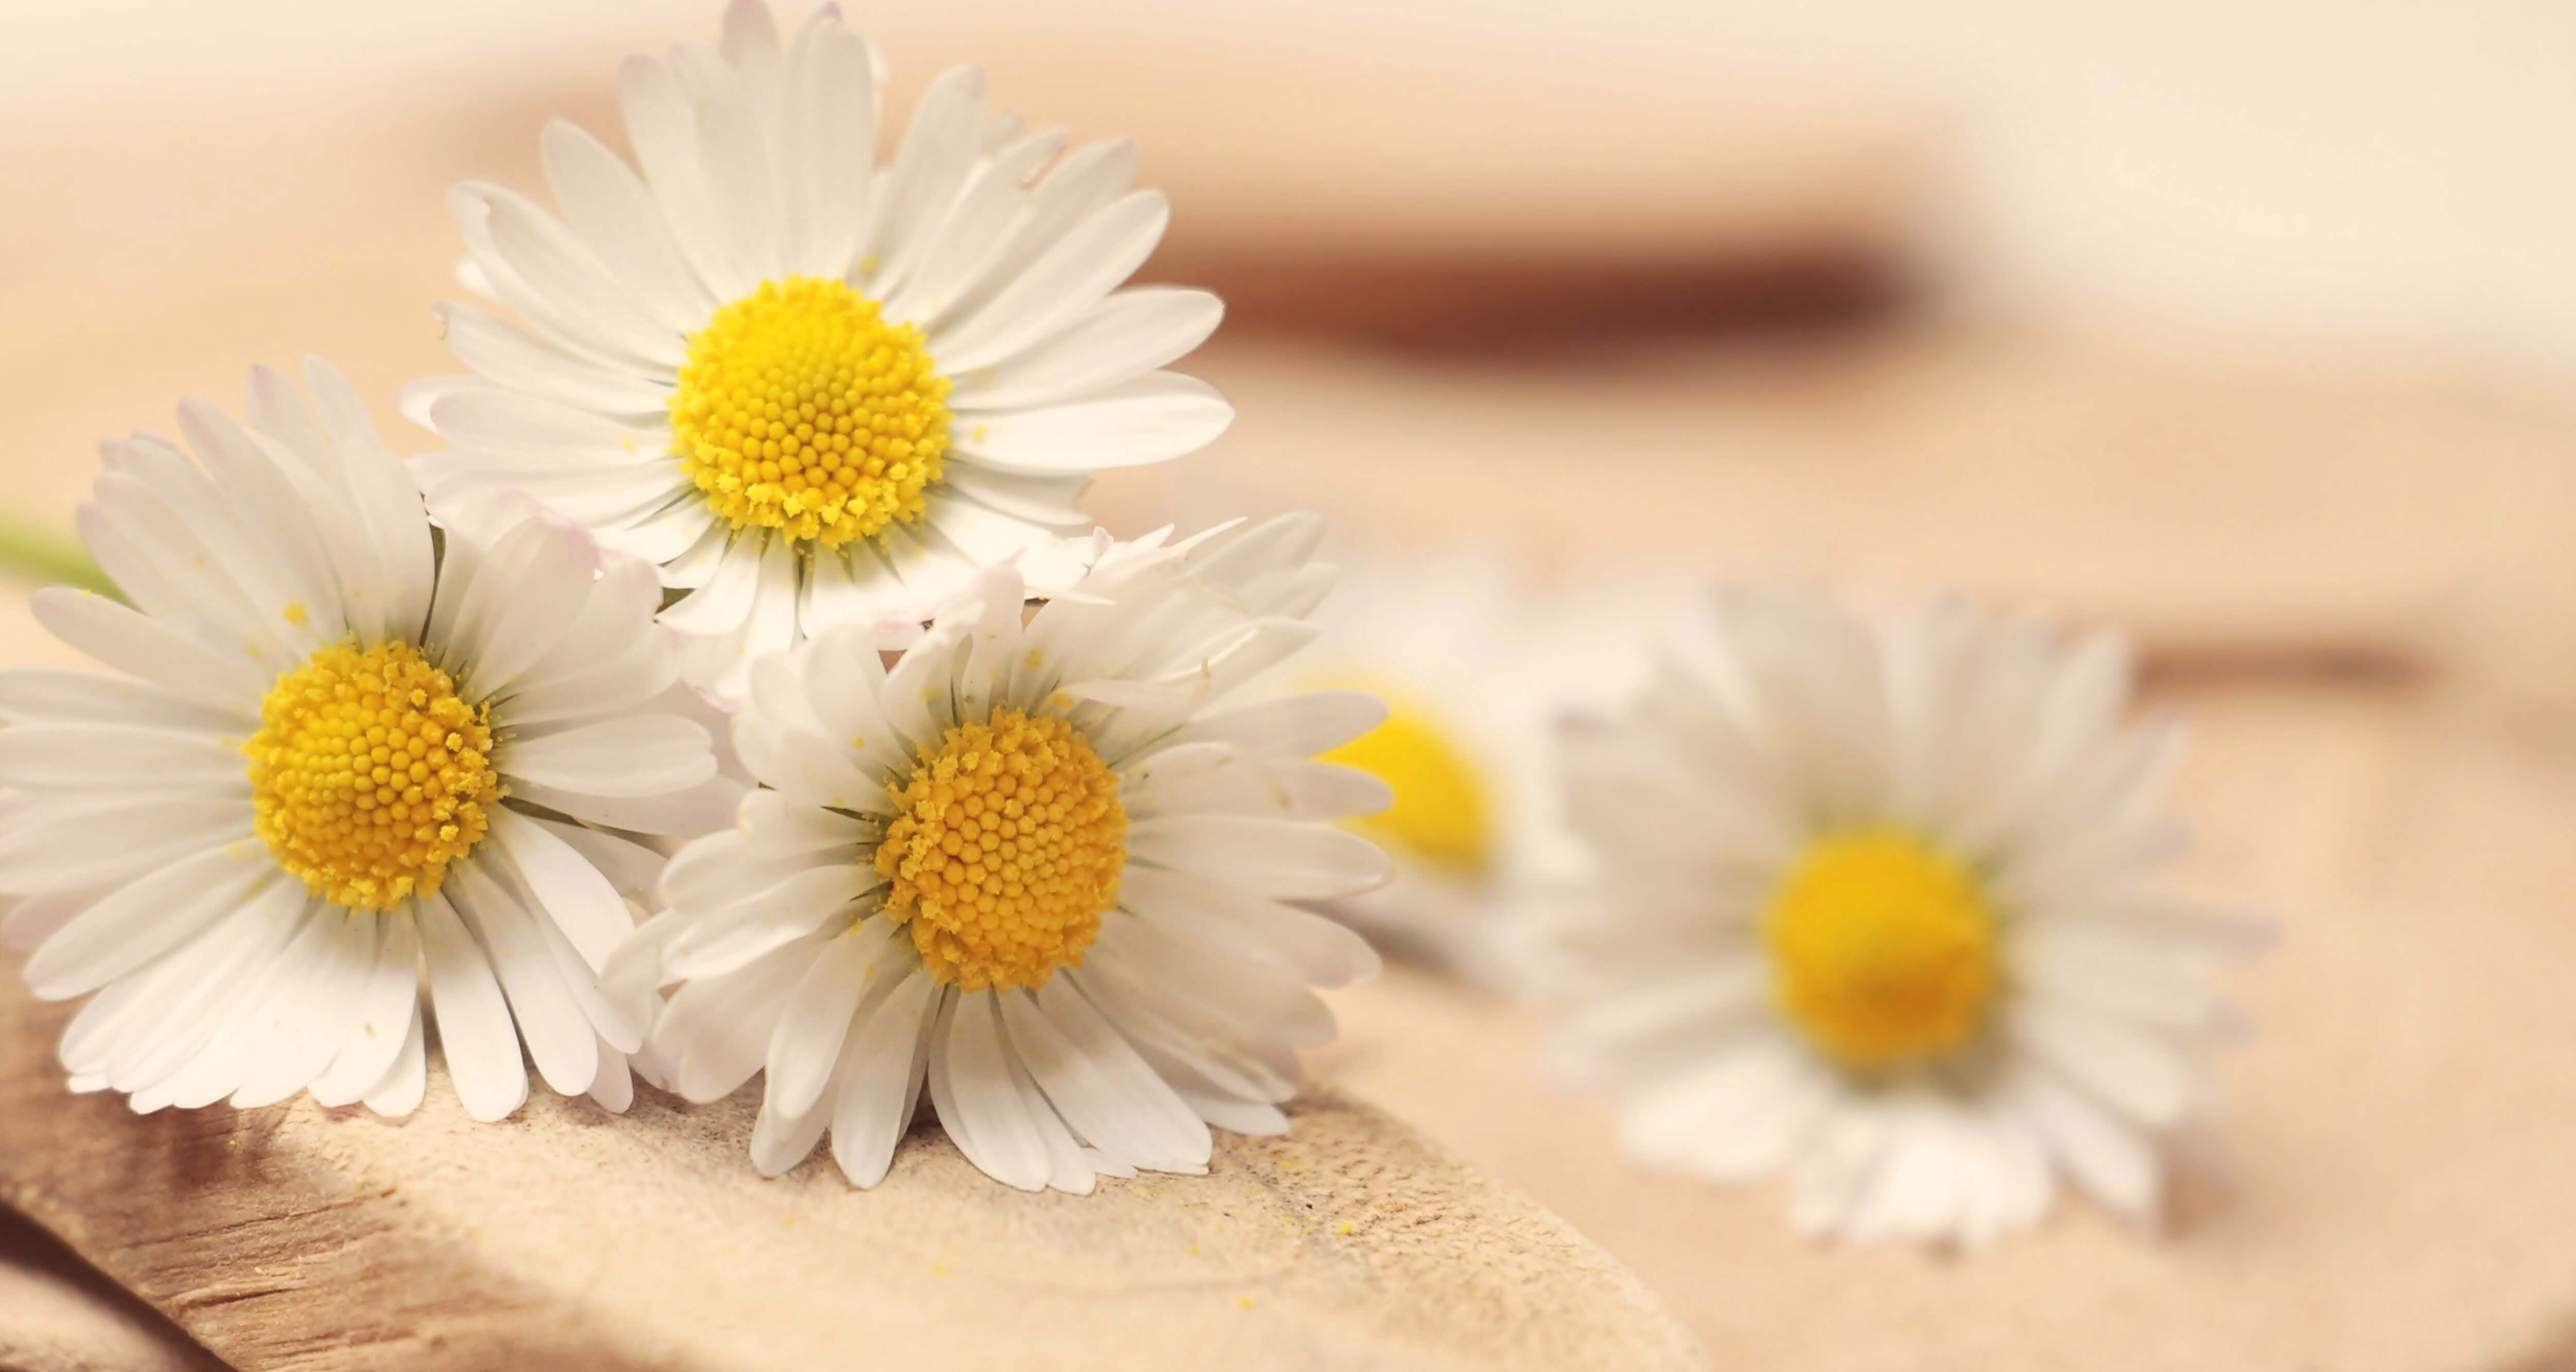 BMV Fragrances offers best quality Chamomile Essential Oil including Reconstitution Chamomile Oil that is frequently added to skin cosmetics to serve as an emollient, and has anti-inflammatory effects.